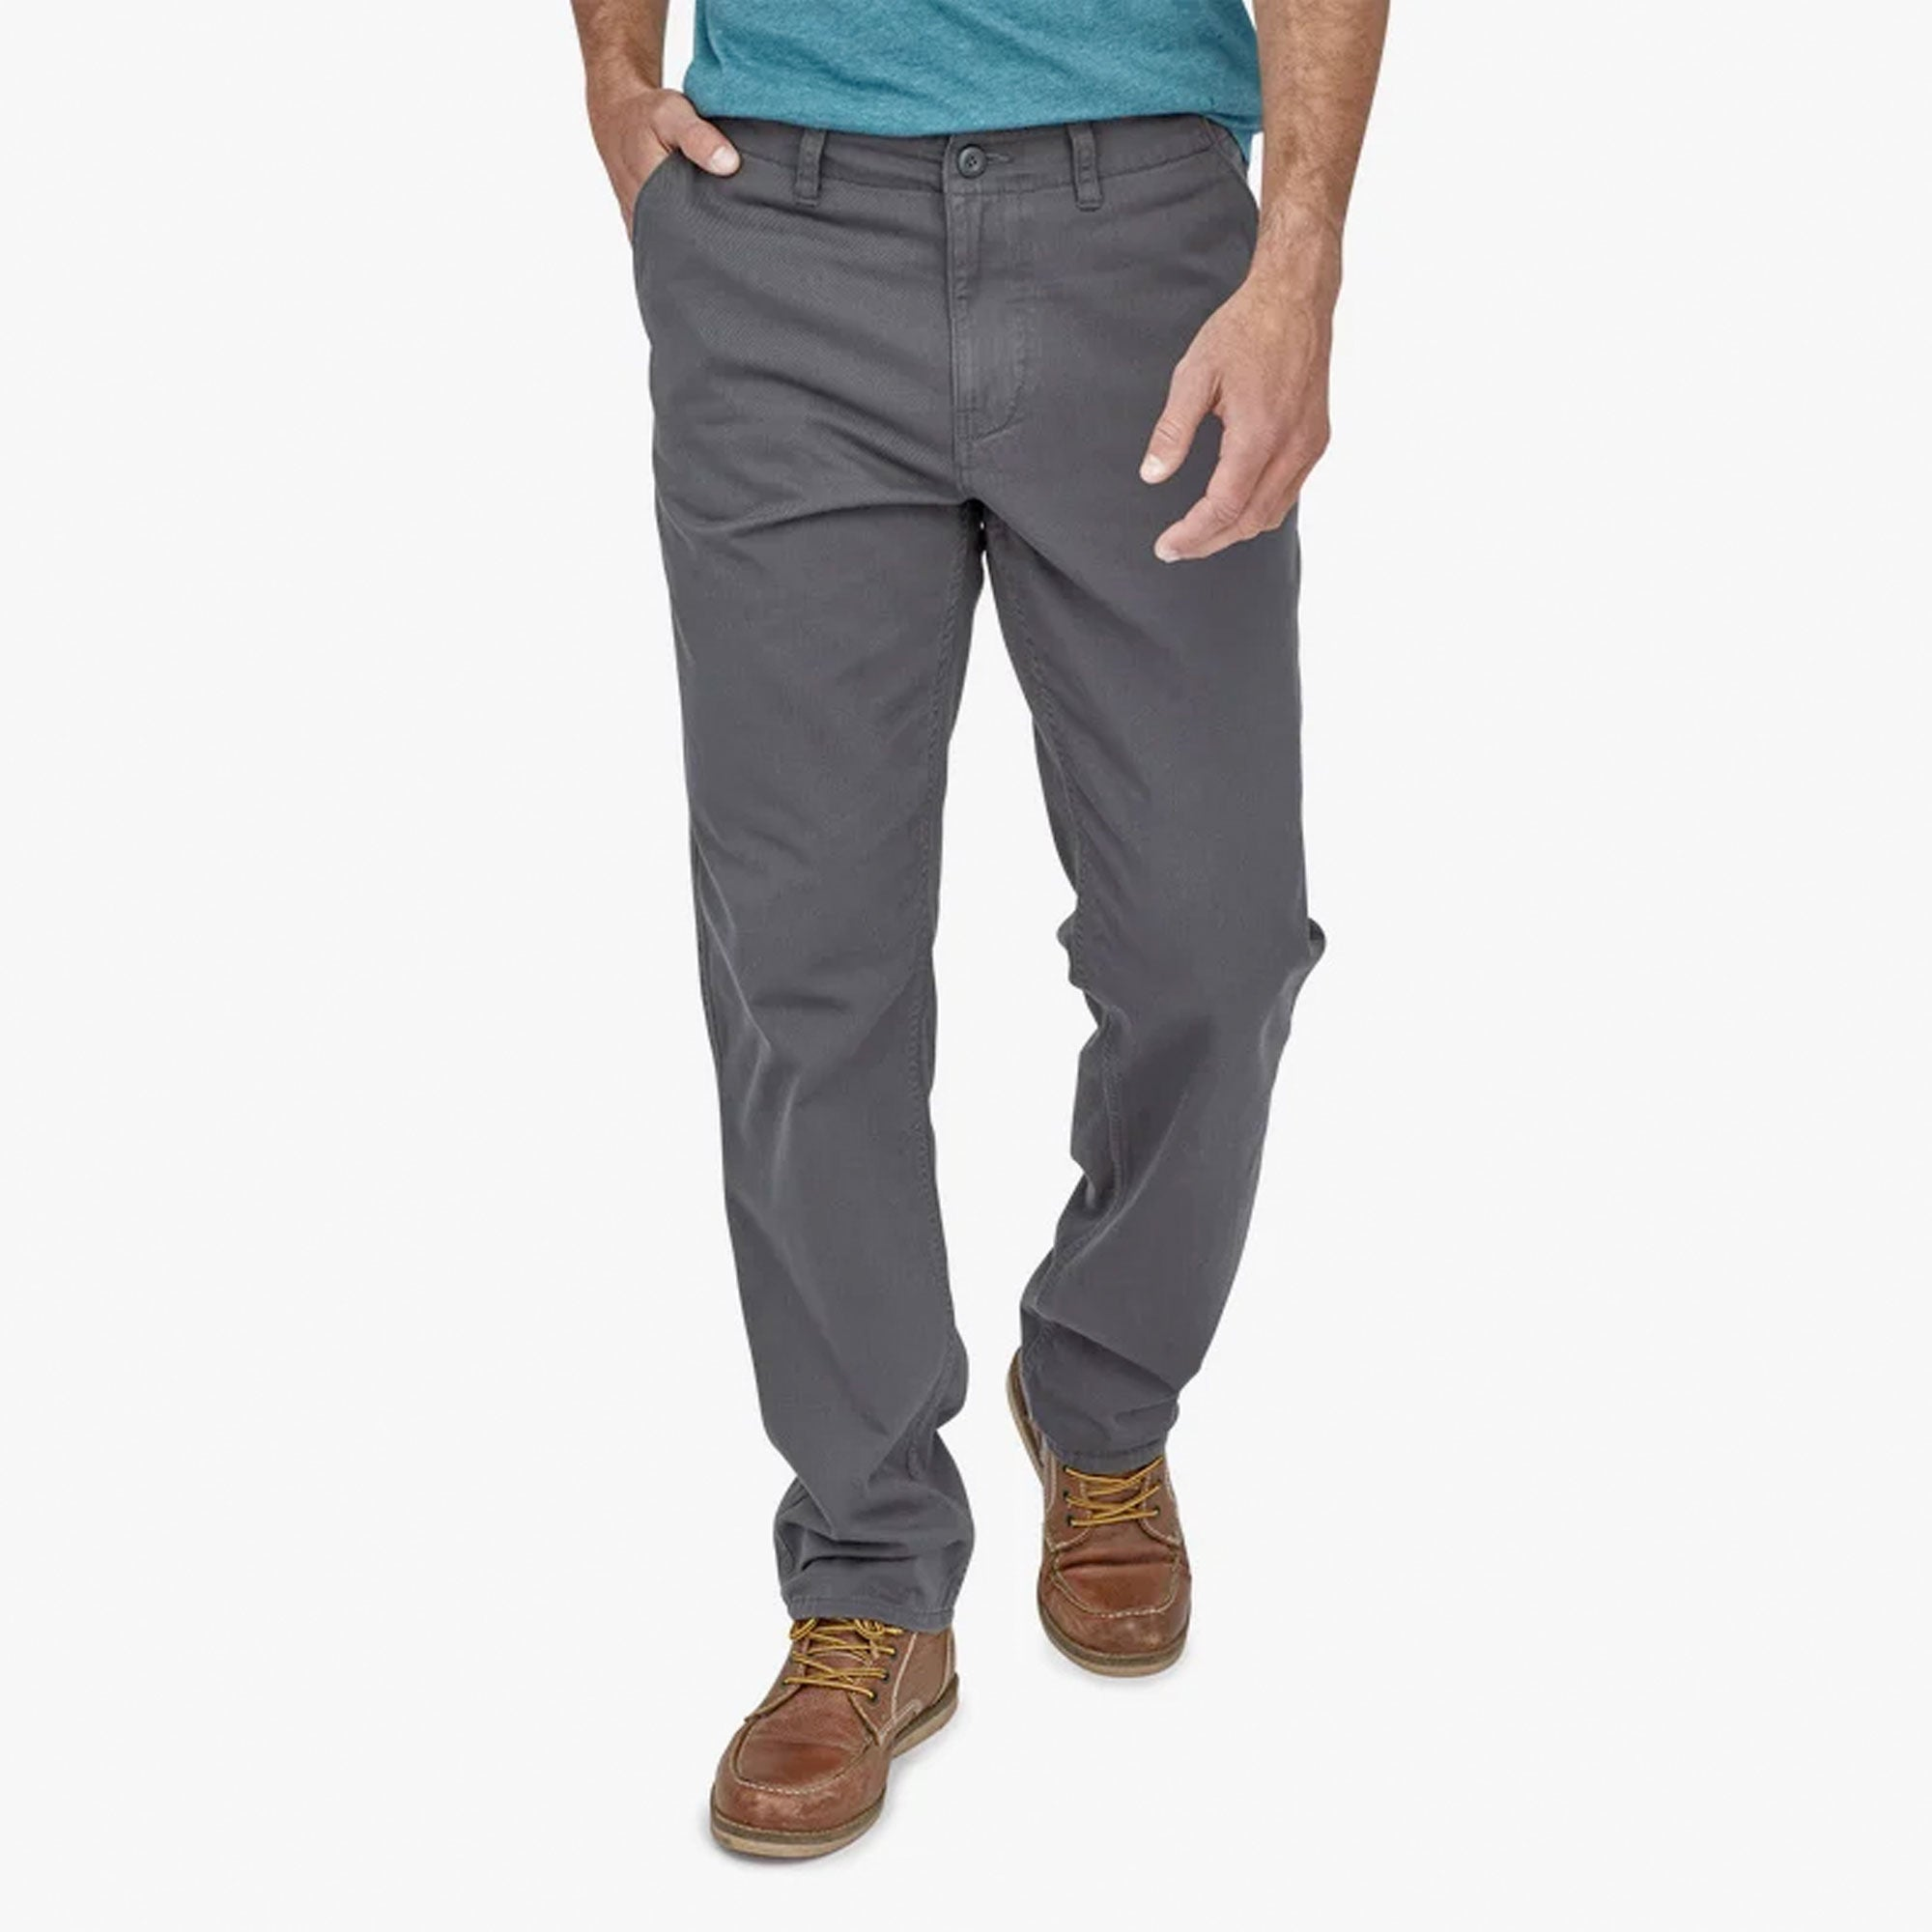 Patagonia Four Canyons Twill Men's Pants